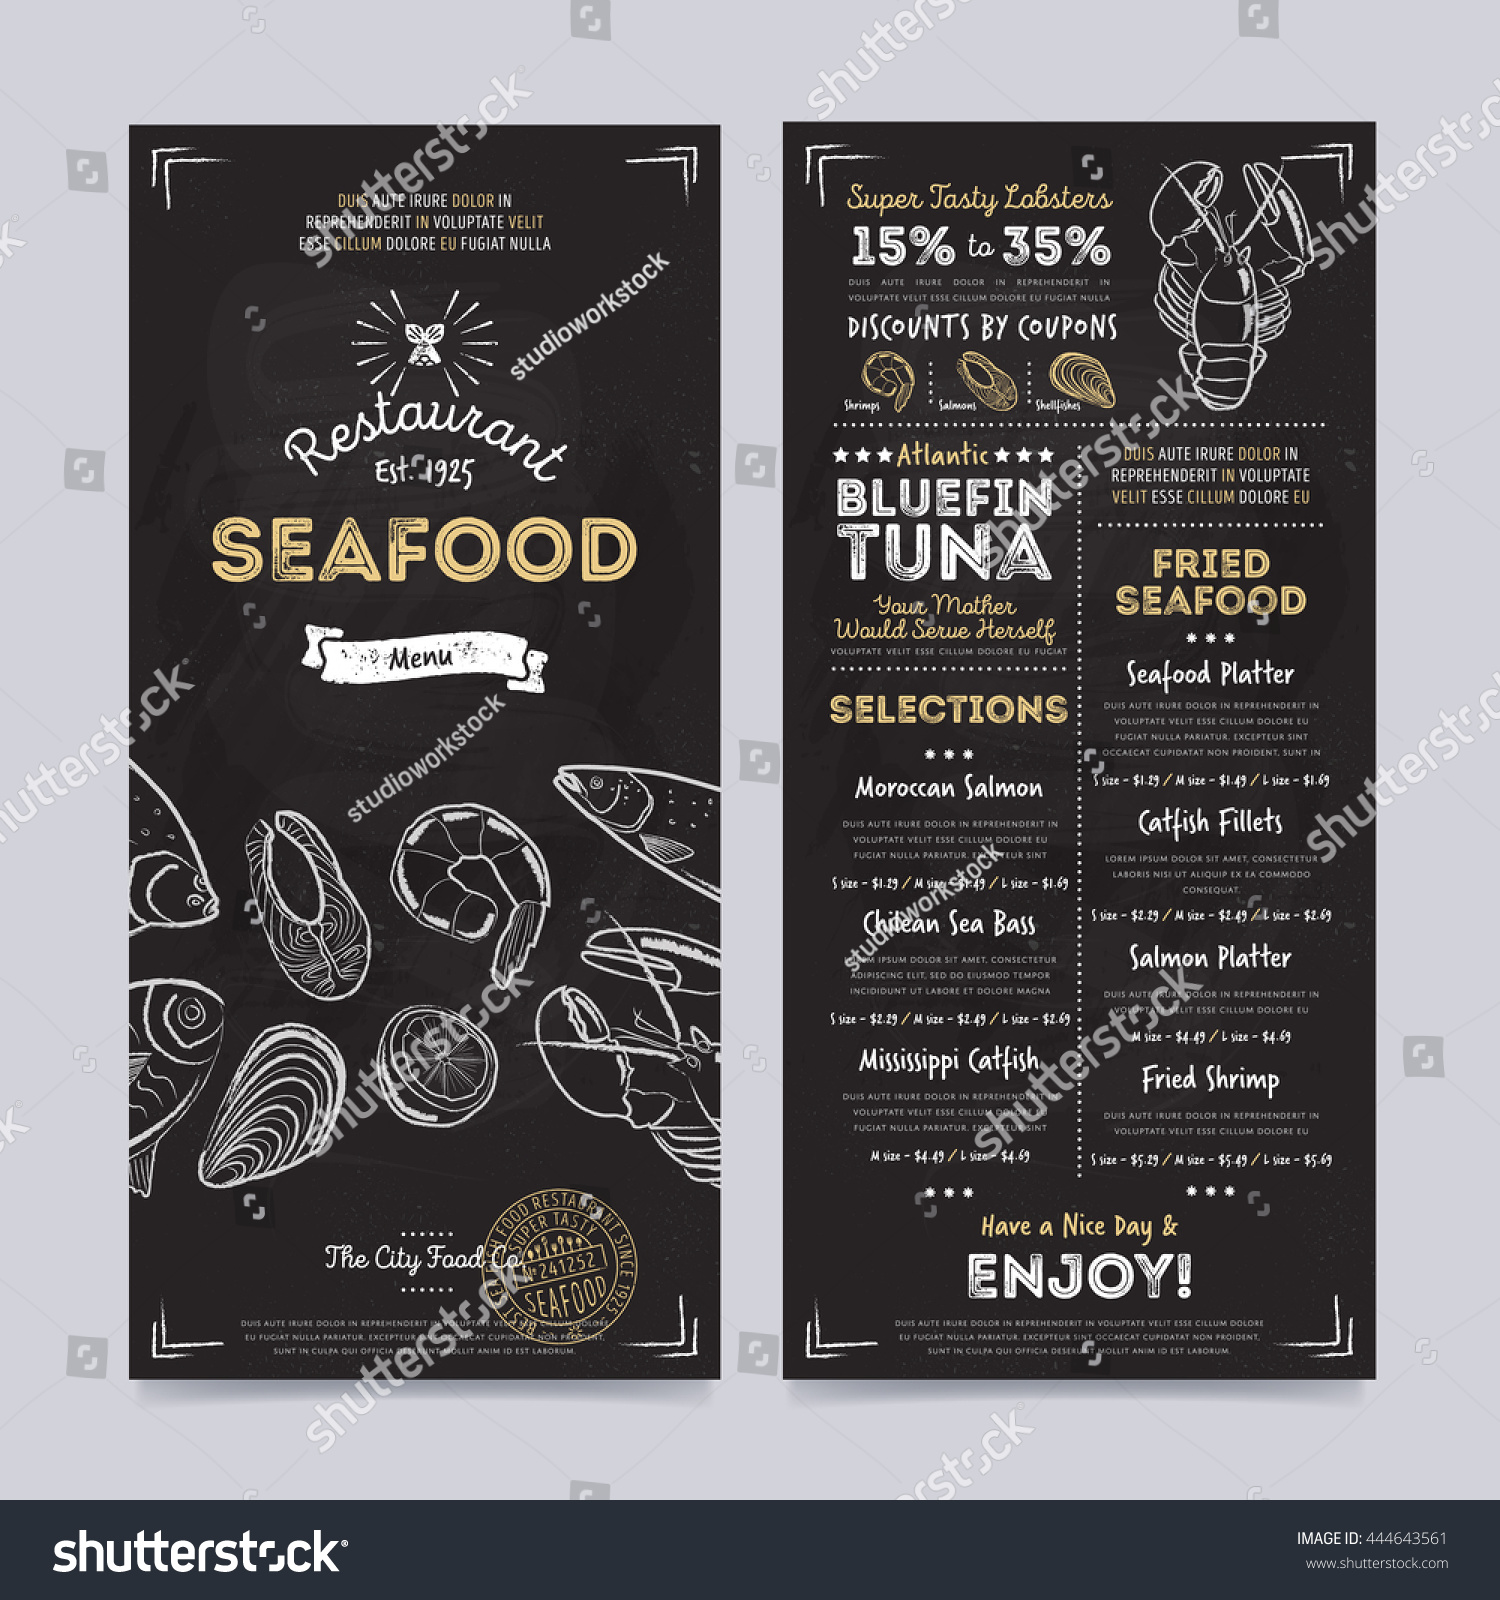 seafood restaurant menu design template on stock vector (royalty